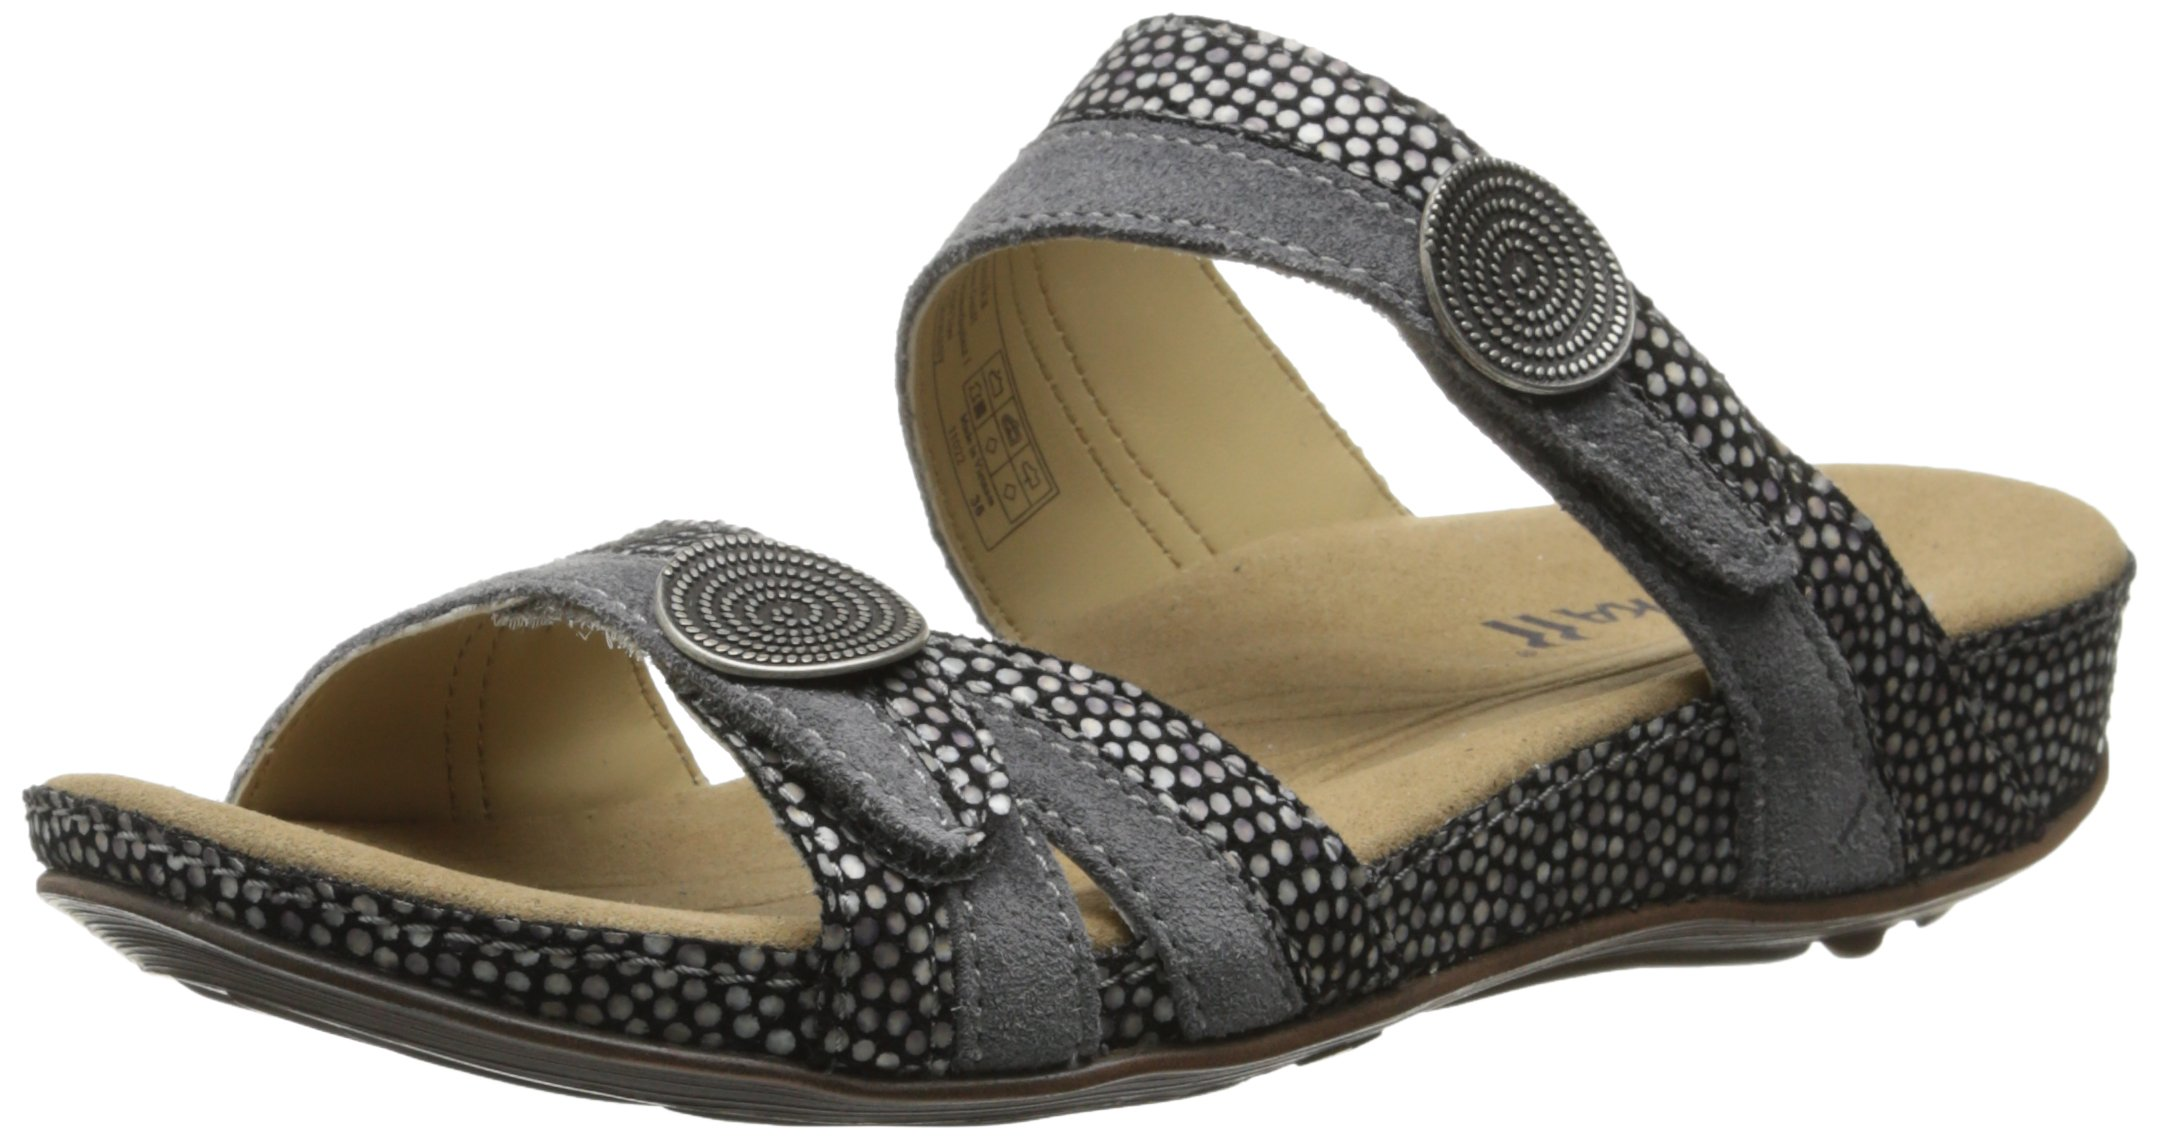 Romika Women's Fidschi 22 dress Sandal, black Kombi, 39 EU/8-8.5 M US